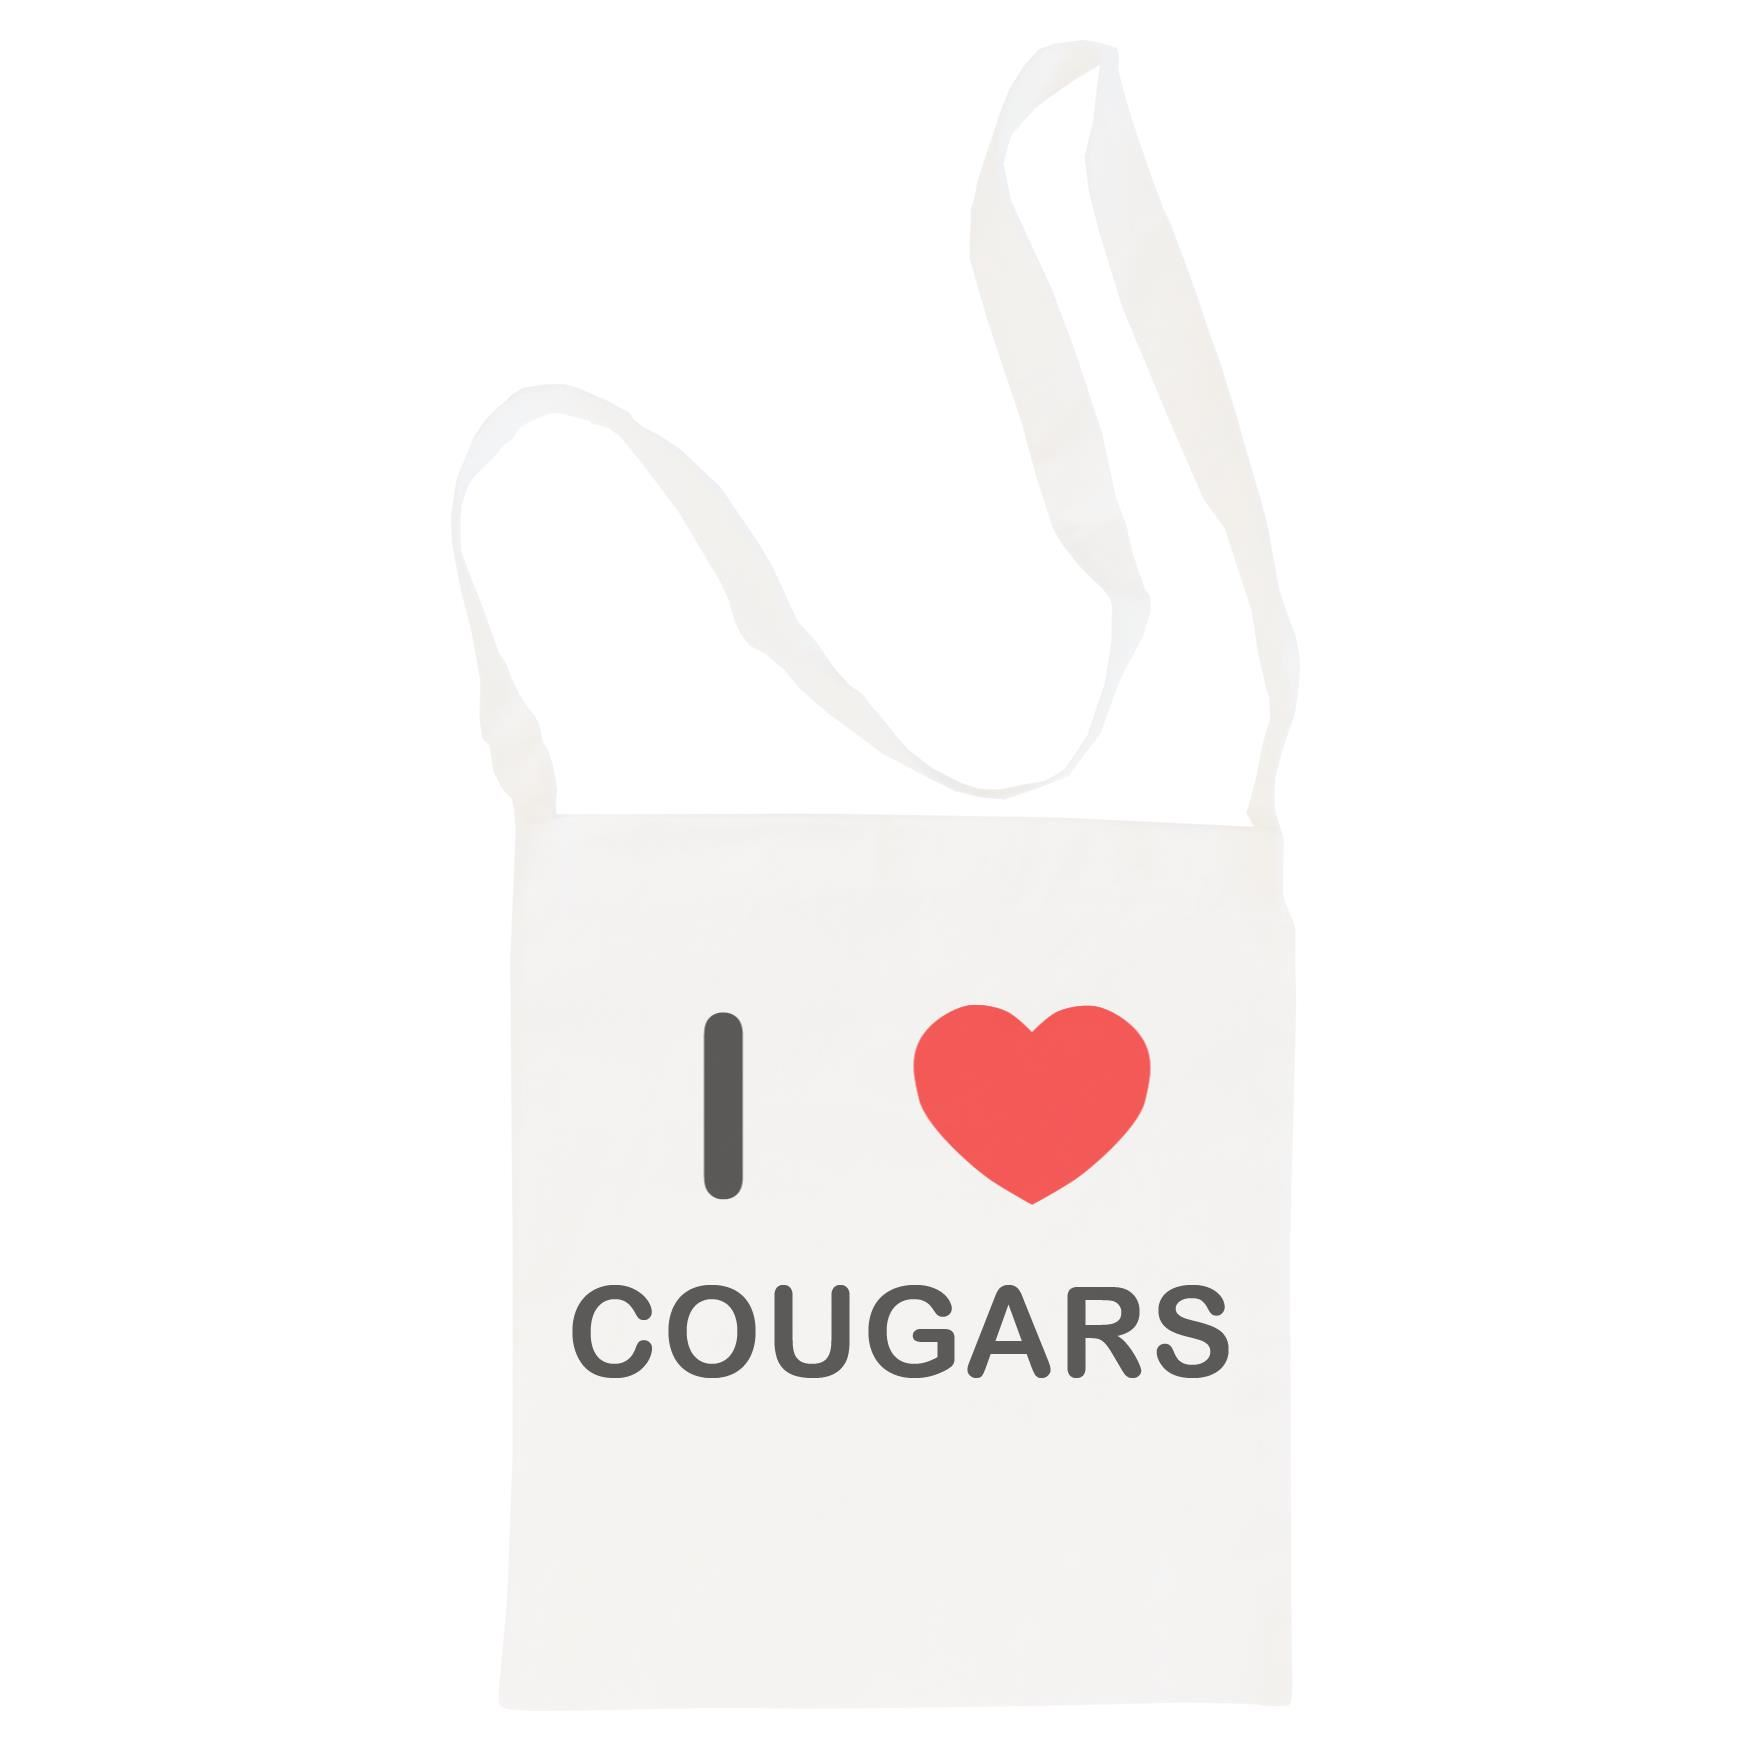 I Love Cougars - Cotton Bag | Size choice Tote, Shopper or Sling